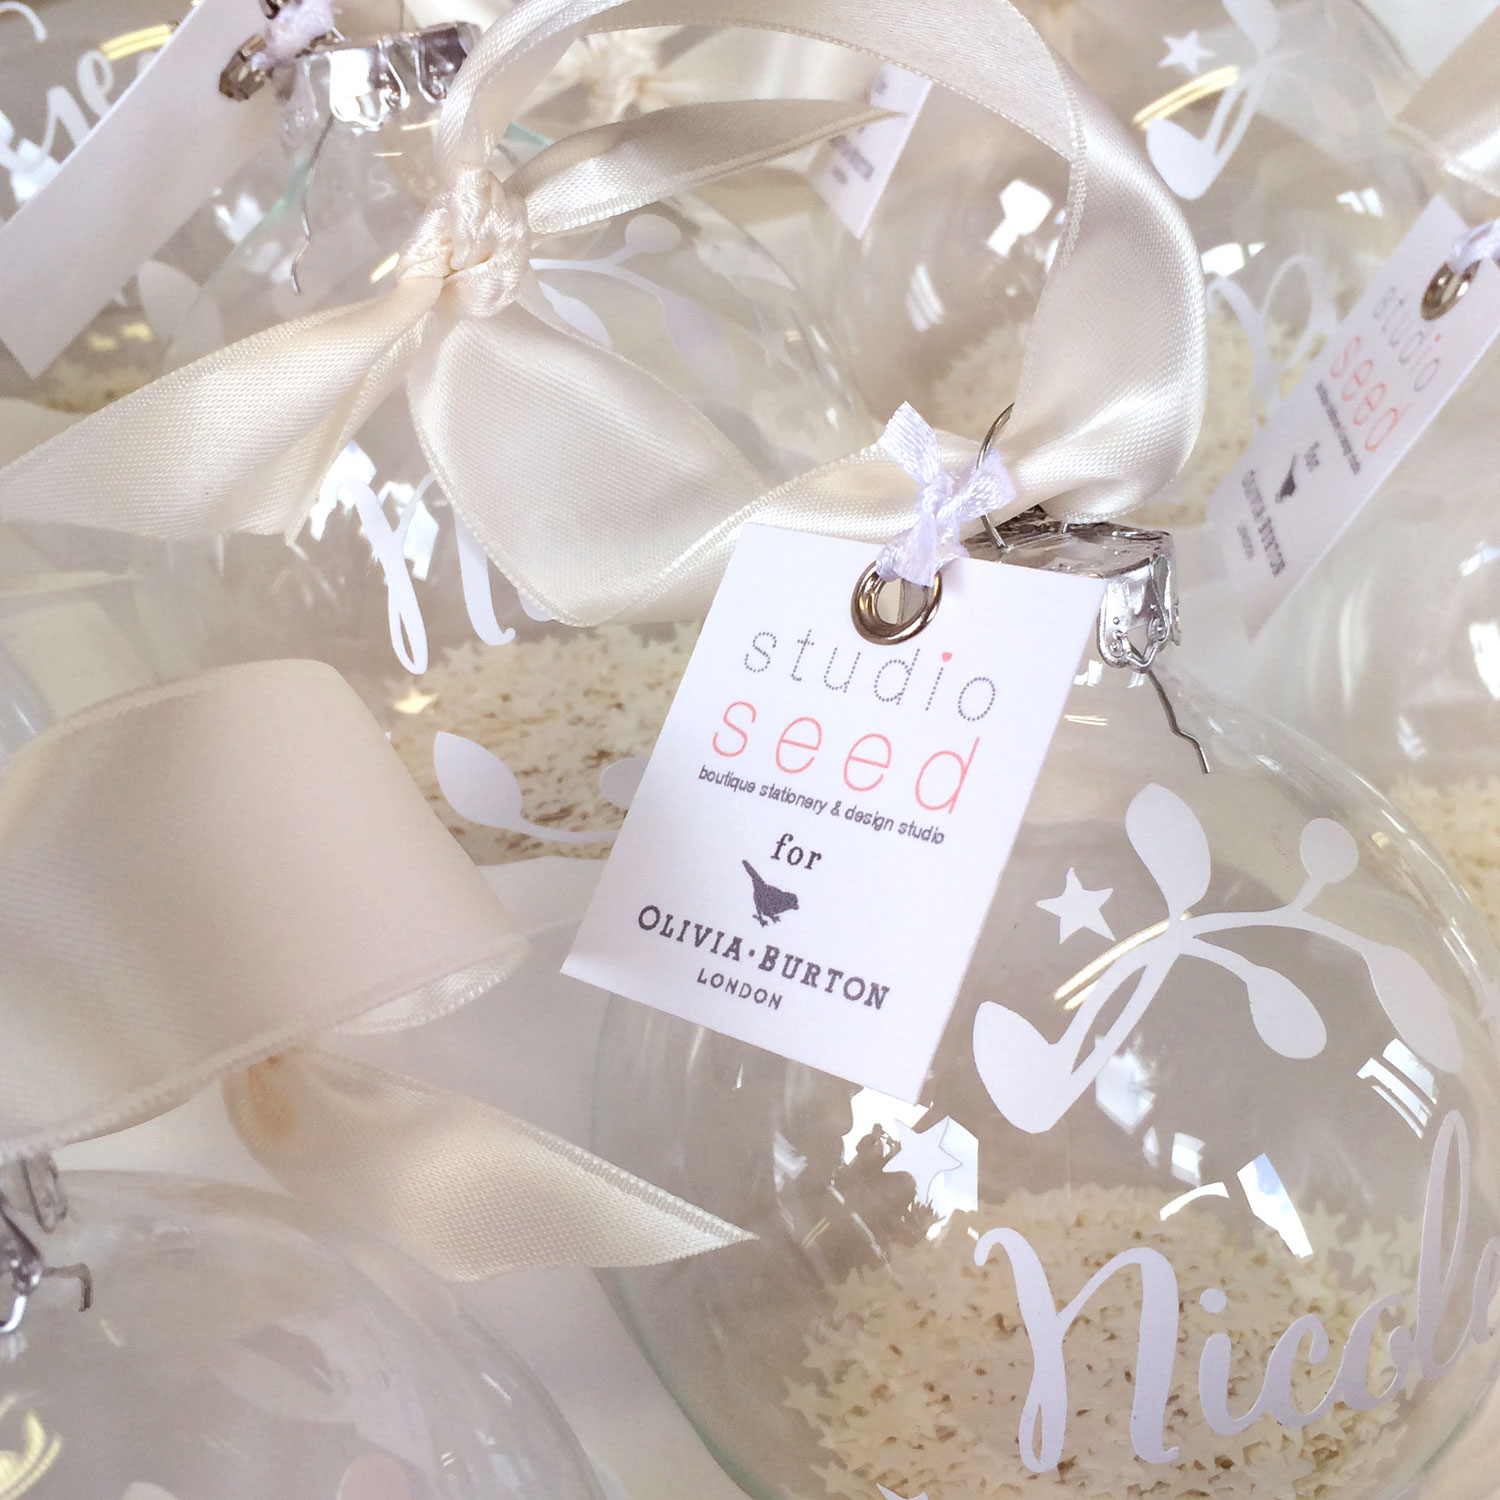 Personalised tags finished each bauble perfectly